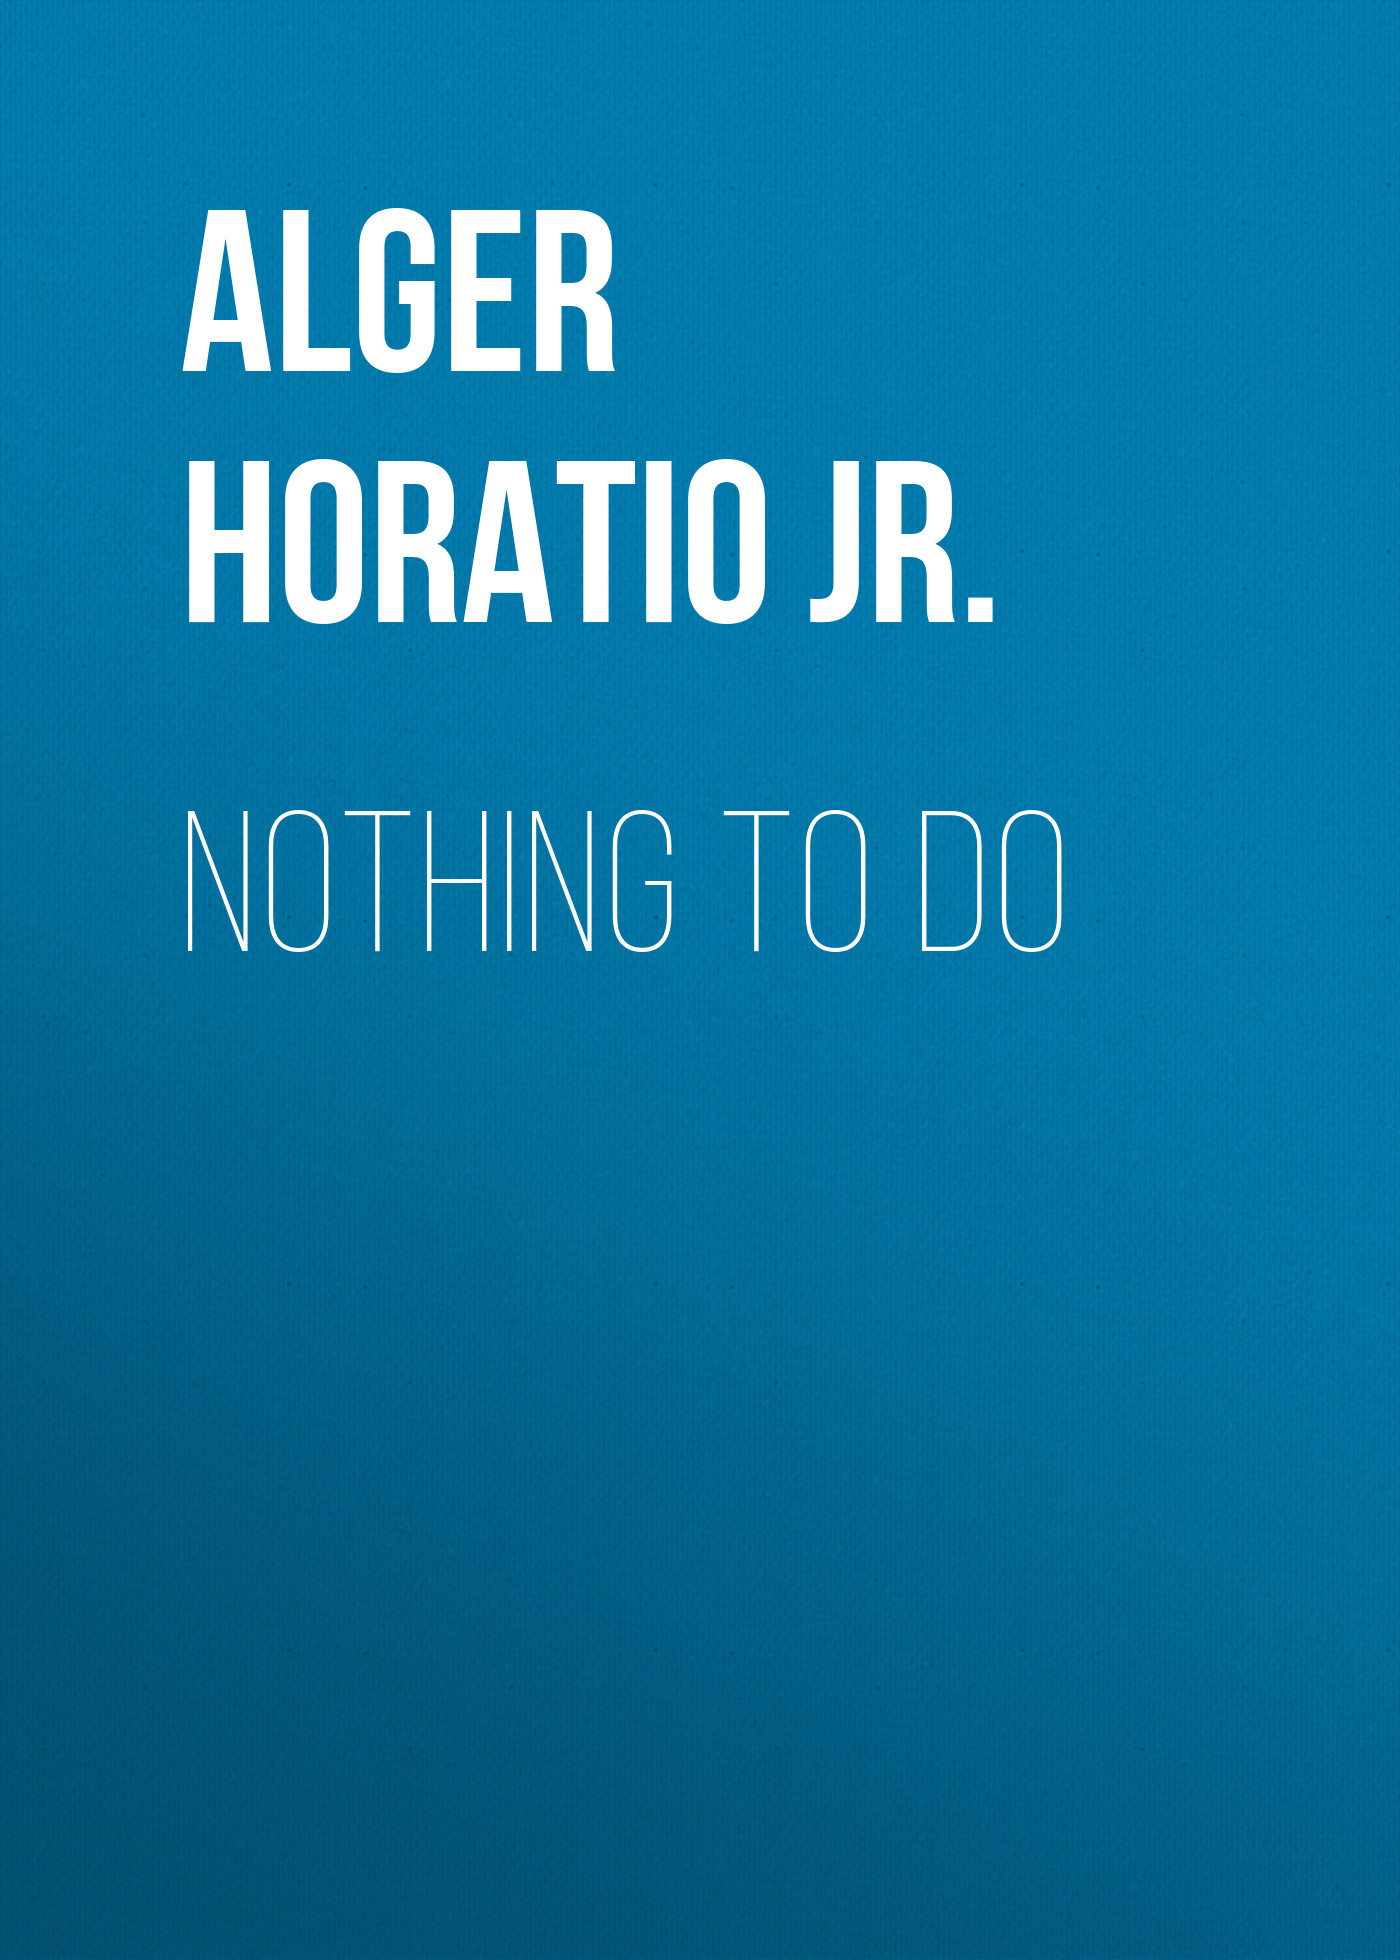 Alger Horatio Jr. Nothing to Do alger horatio jr mark manning s mission page 9 page 10